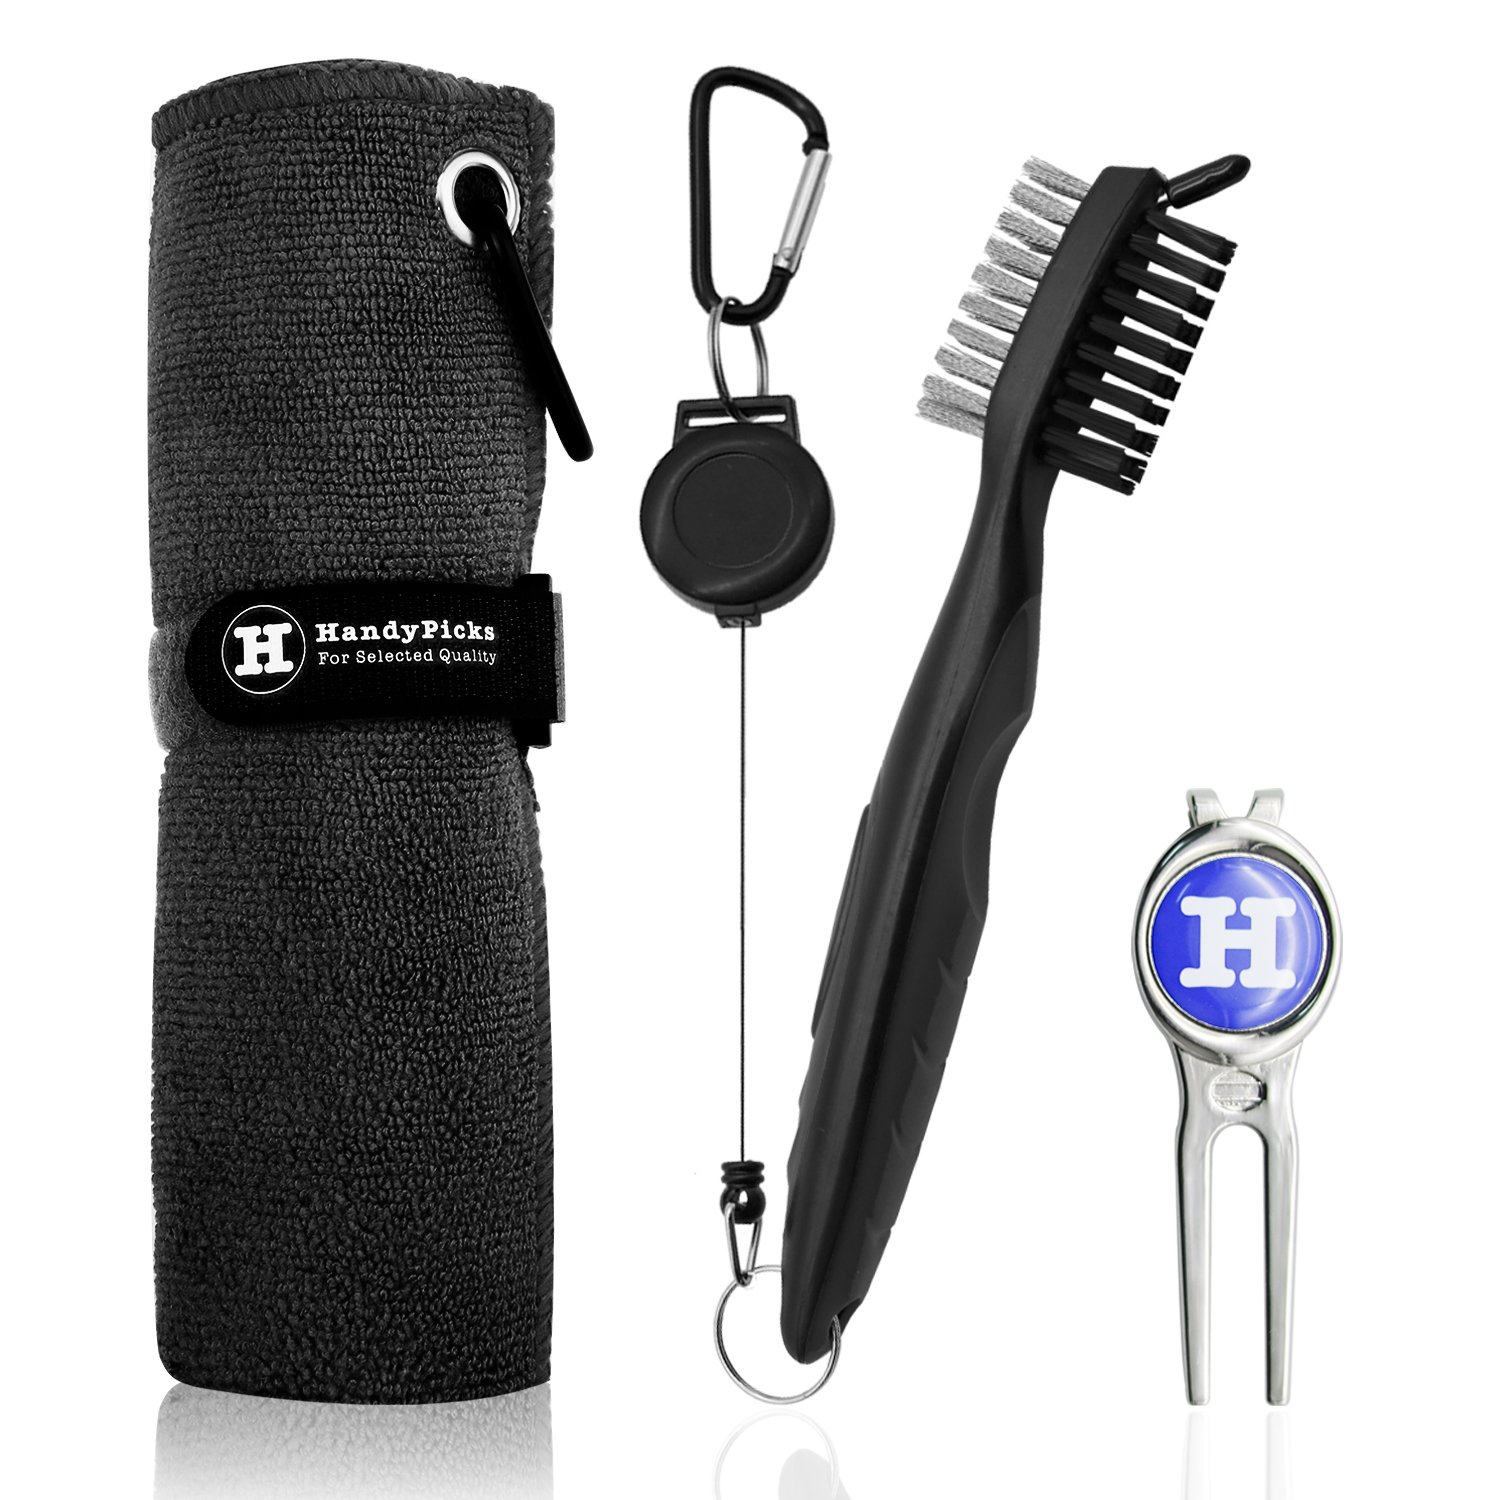 Handy Picks Microfiber Golf Towel (16'' X 16'') with Carabiner, Club Brush, Golf Divot Repair Tool with Ball Marker - Golf Accessories, Ideal for Golfers - 3 in 1 Golf Cleaning Kit (Pack of 3, Black)